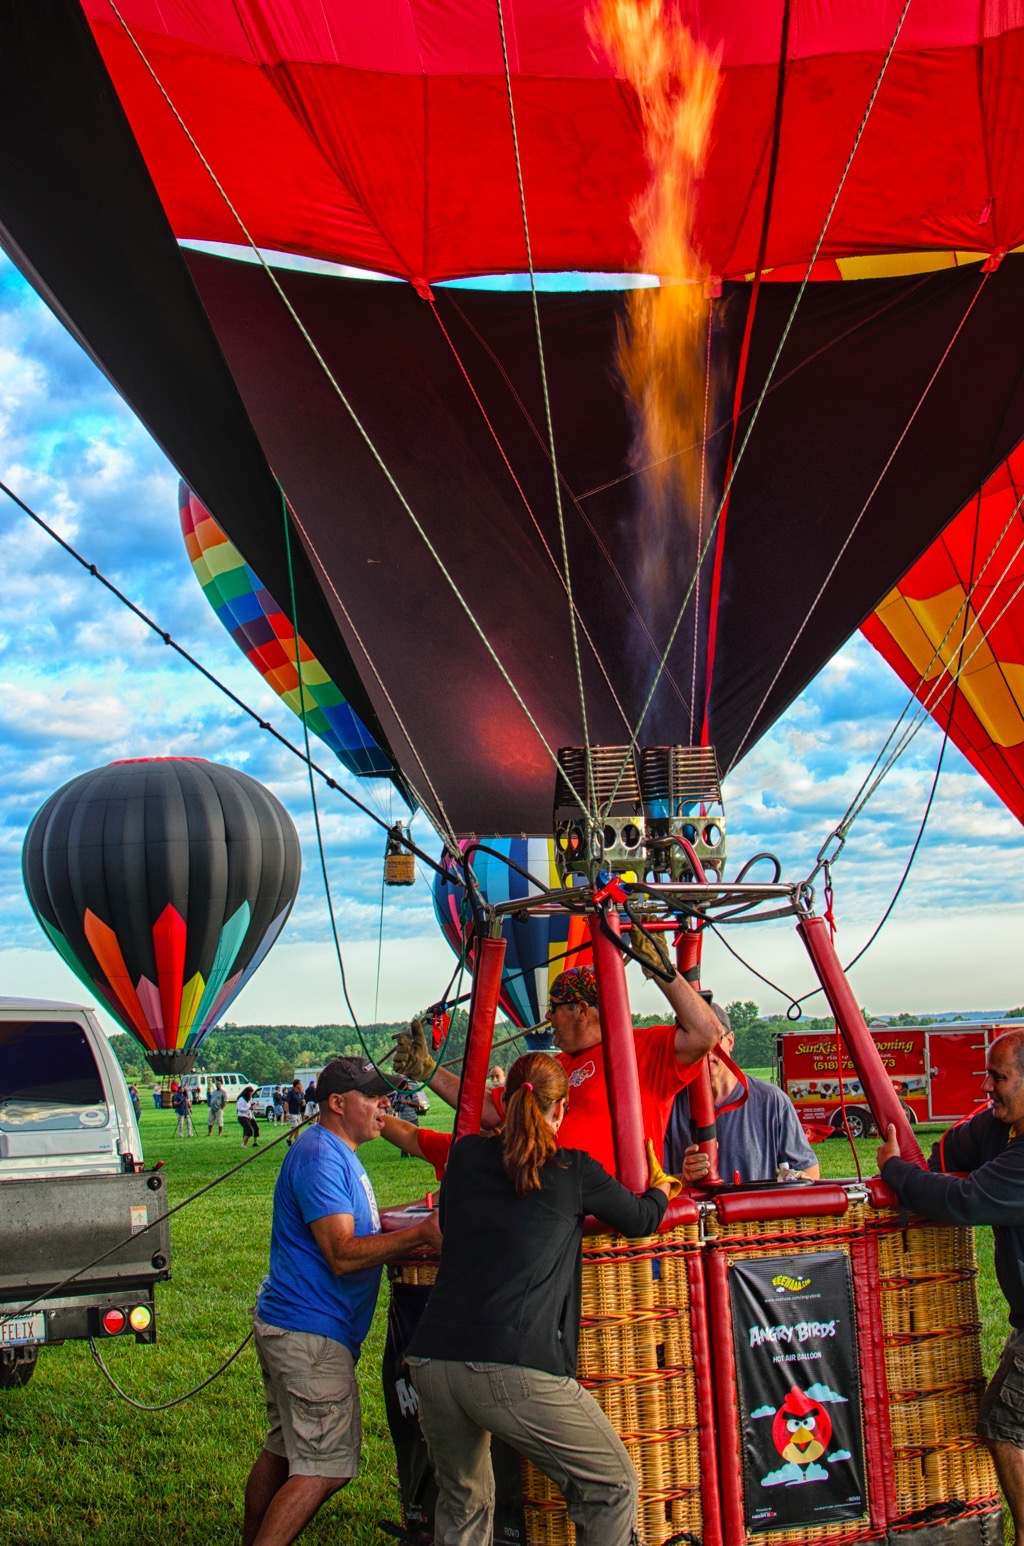 32nd annual New Jersey Festival of Ballooning, 1406319649 4